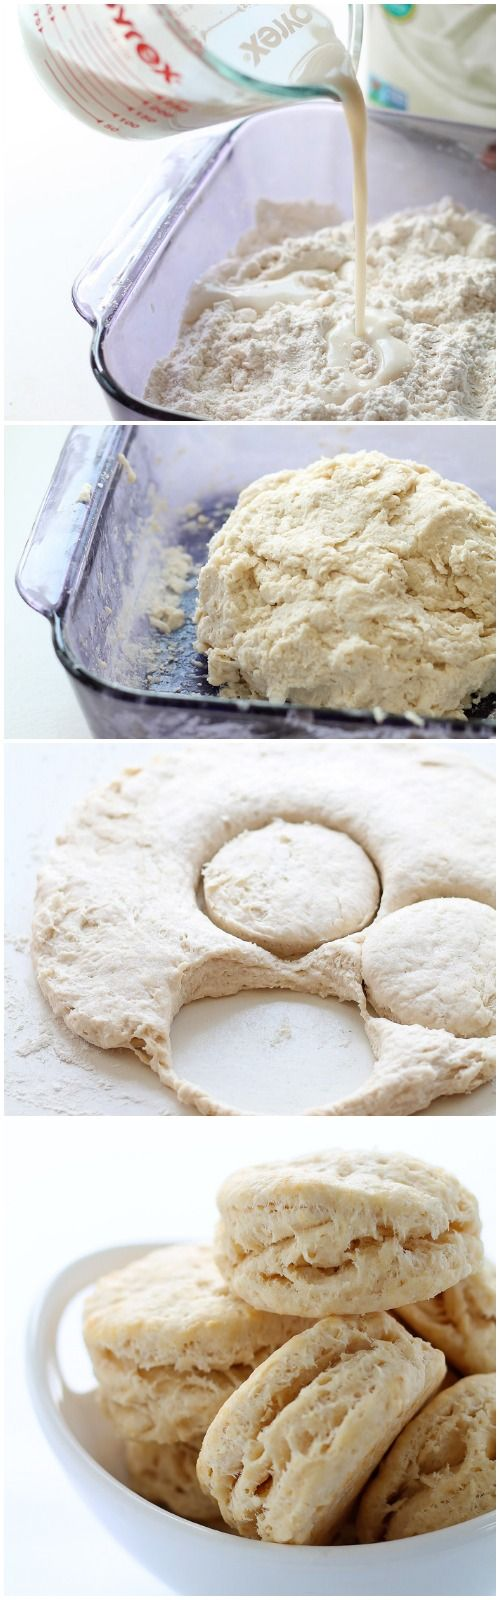 Tender, flaky biscuits are the perfect addition to any meal. This recipe gets a healthy boost from coconut oil in place of the butter! You MUST try this recipe! | LoveGrowsWild.com